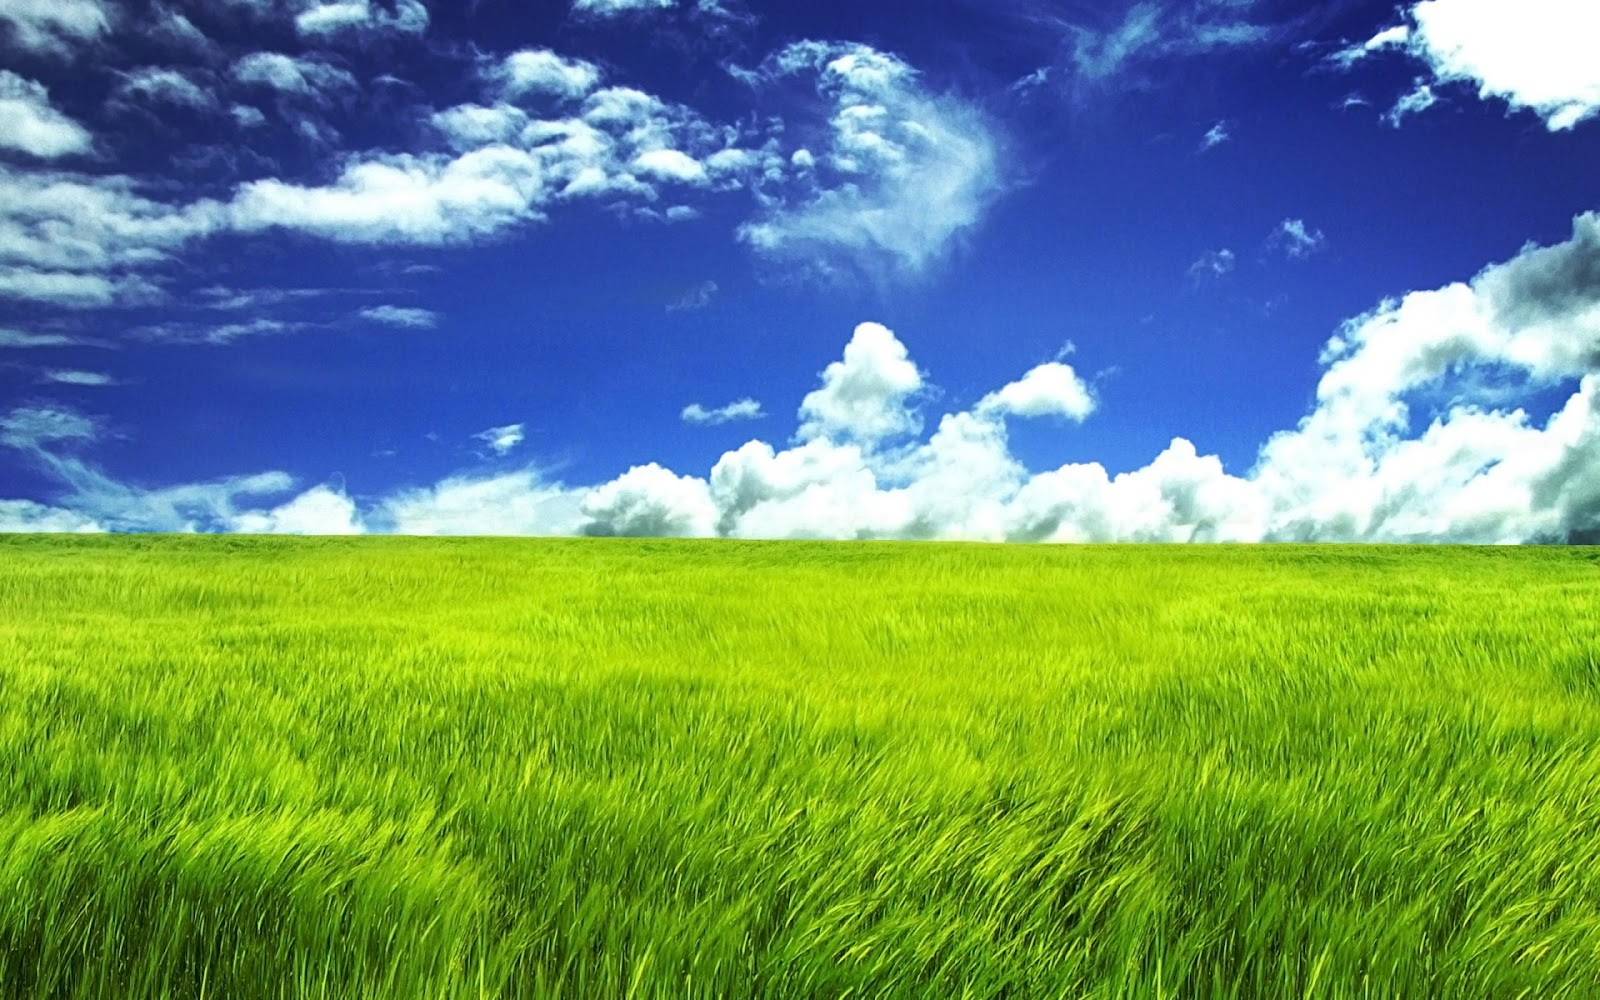 Beautiful HD Wallpapers Amazing Spring Grassland Desktop Wallpaper 1600x1000